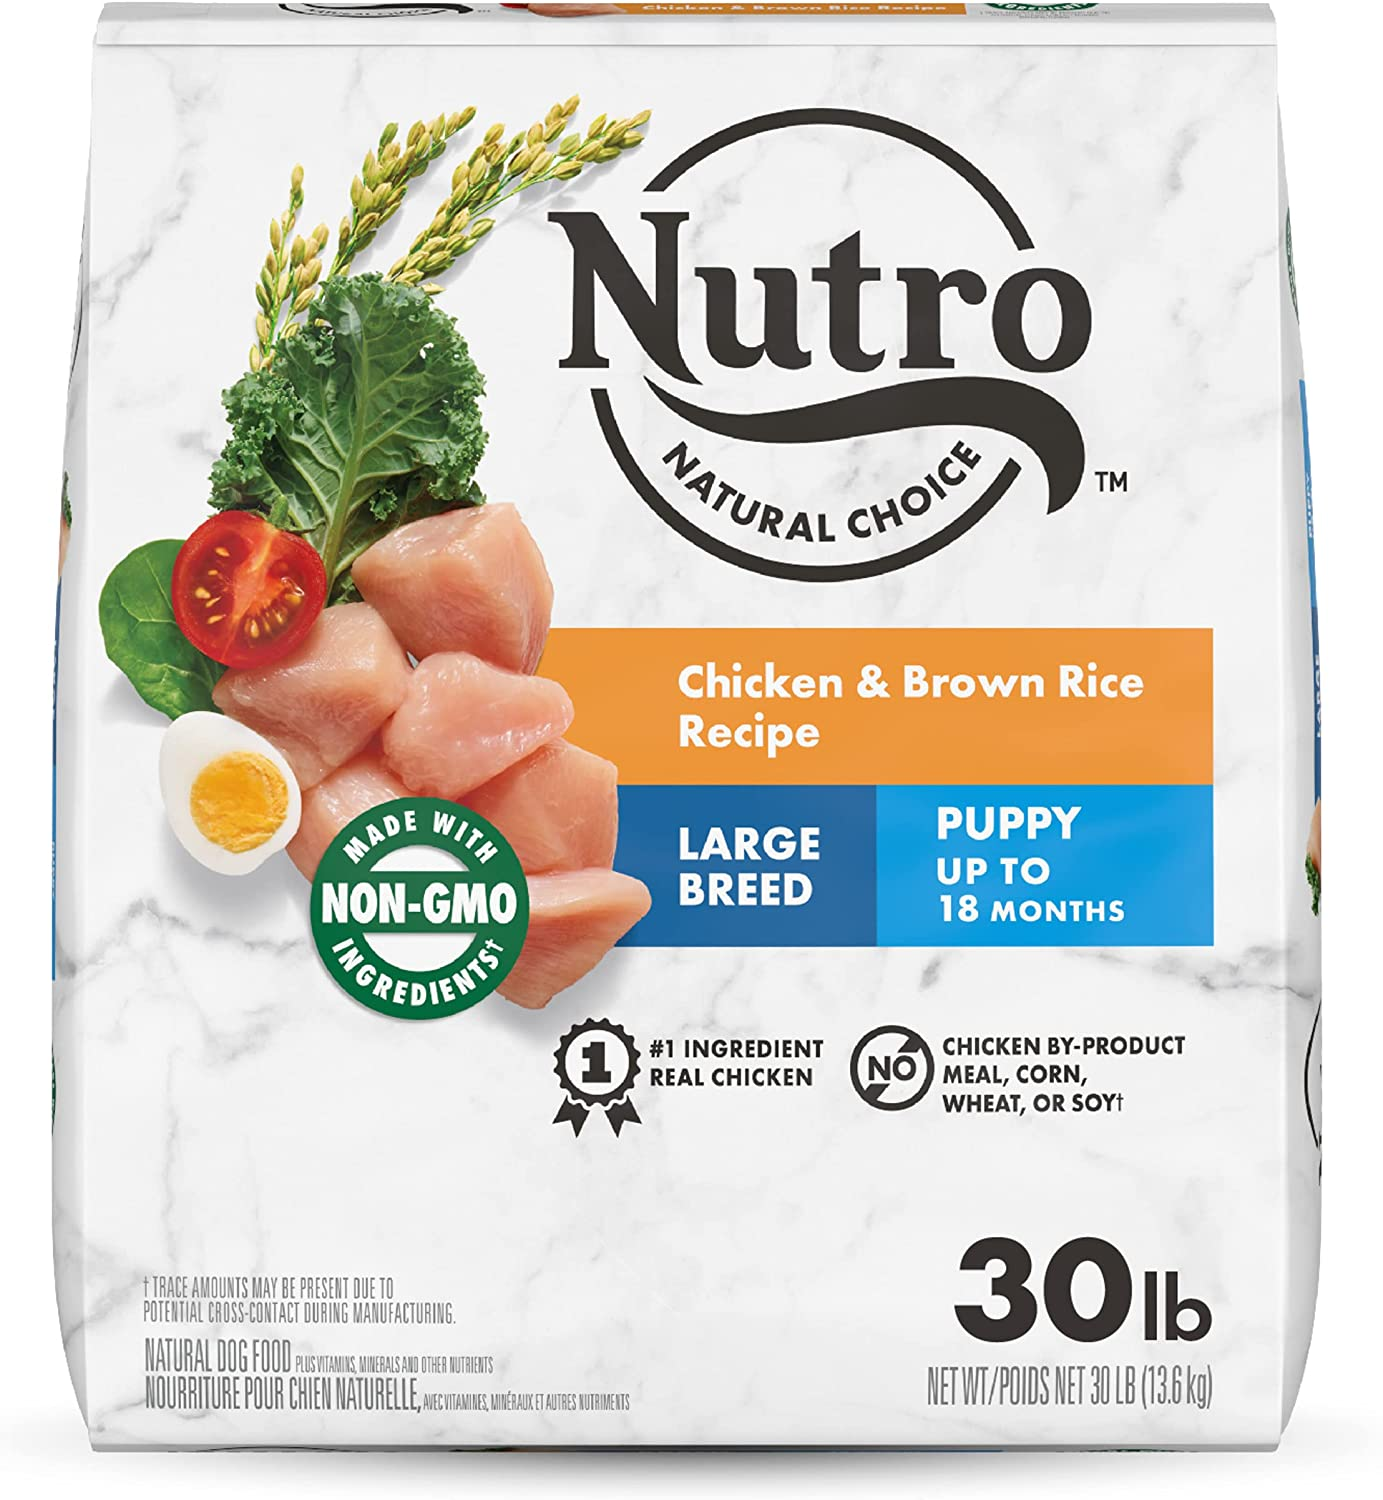 NUTRO NATURAL CHOICE Large Breed Puppy Dry Dog Food, Chicken & Lamb, 30 lb. bags